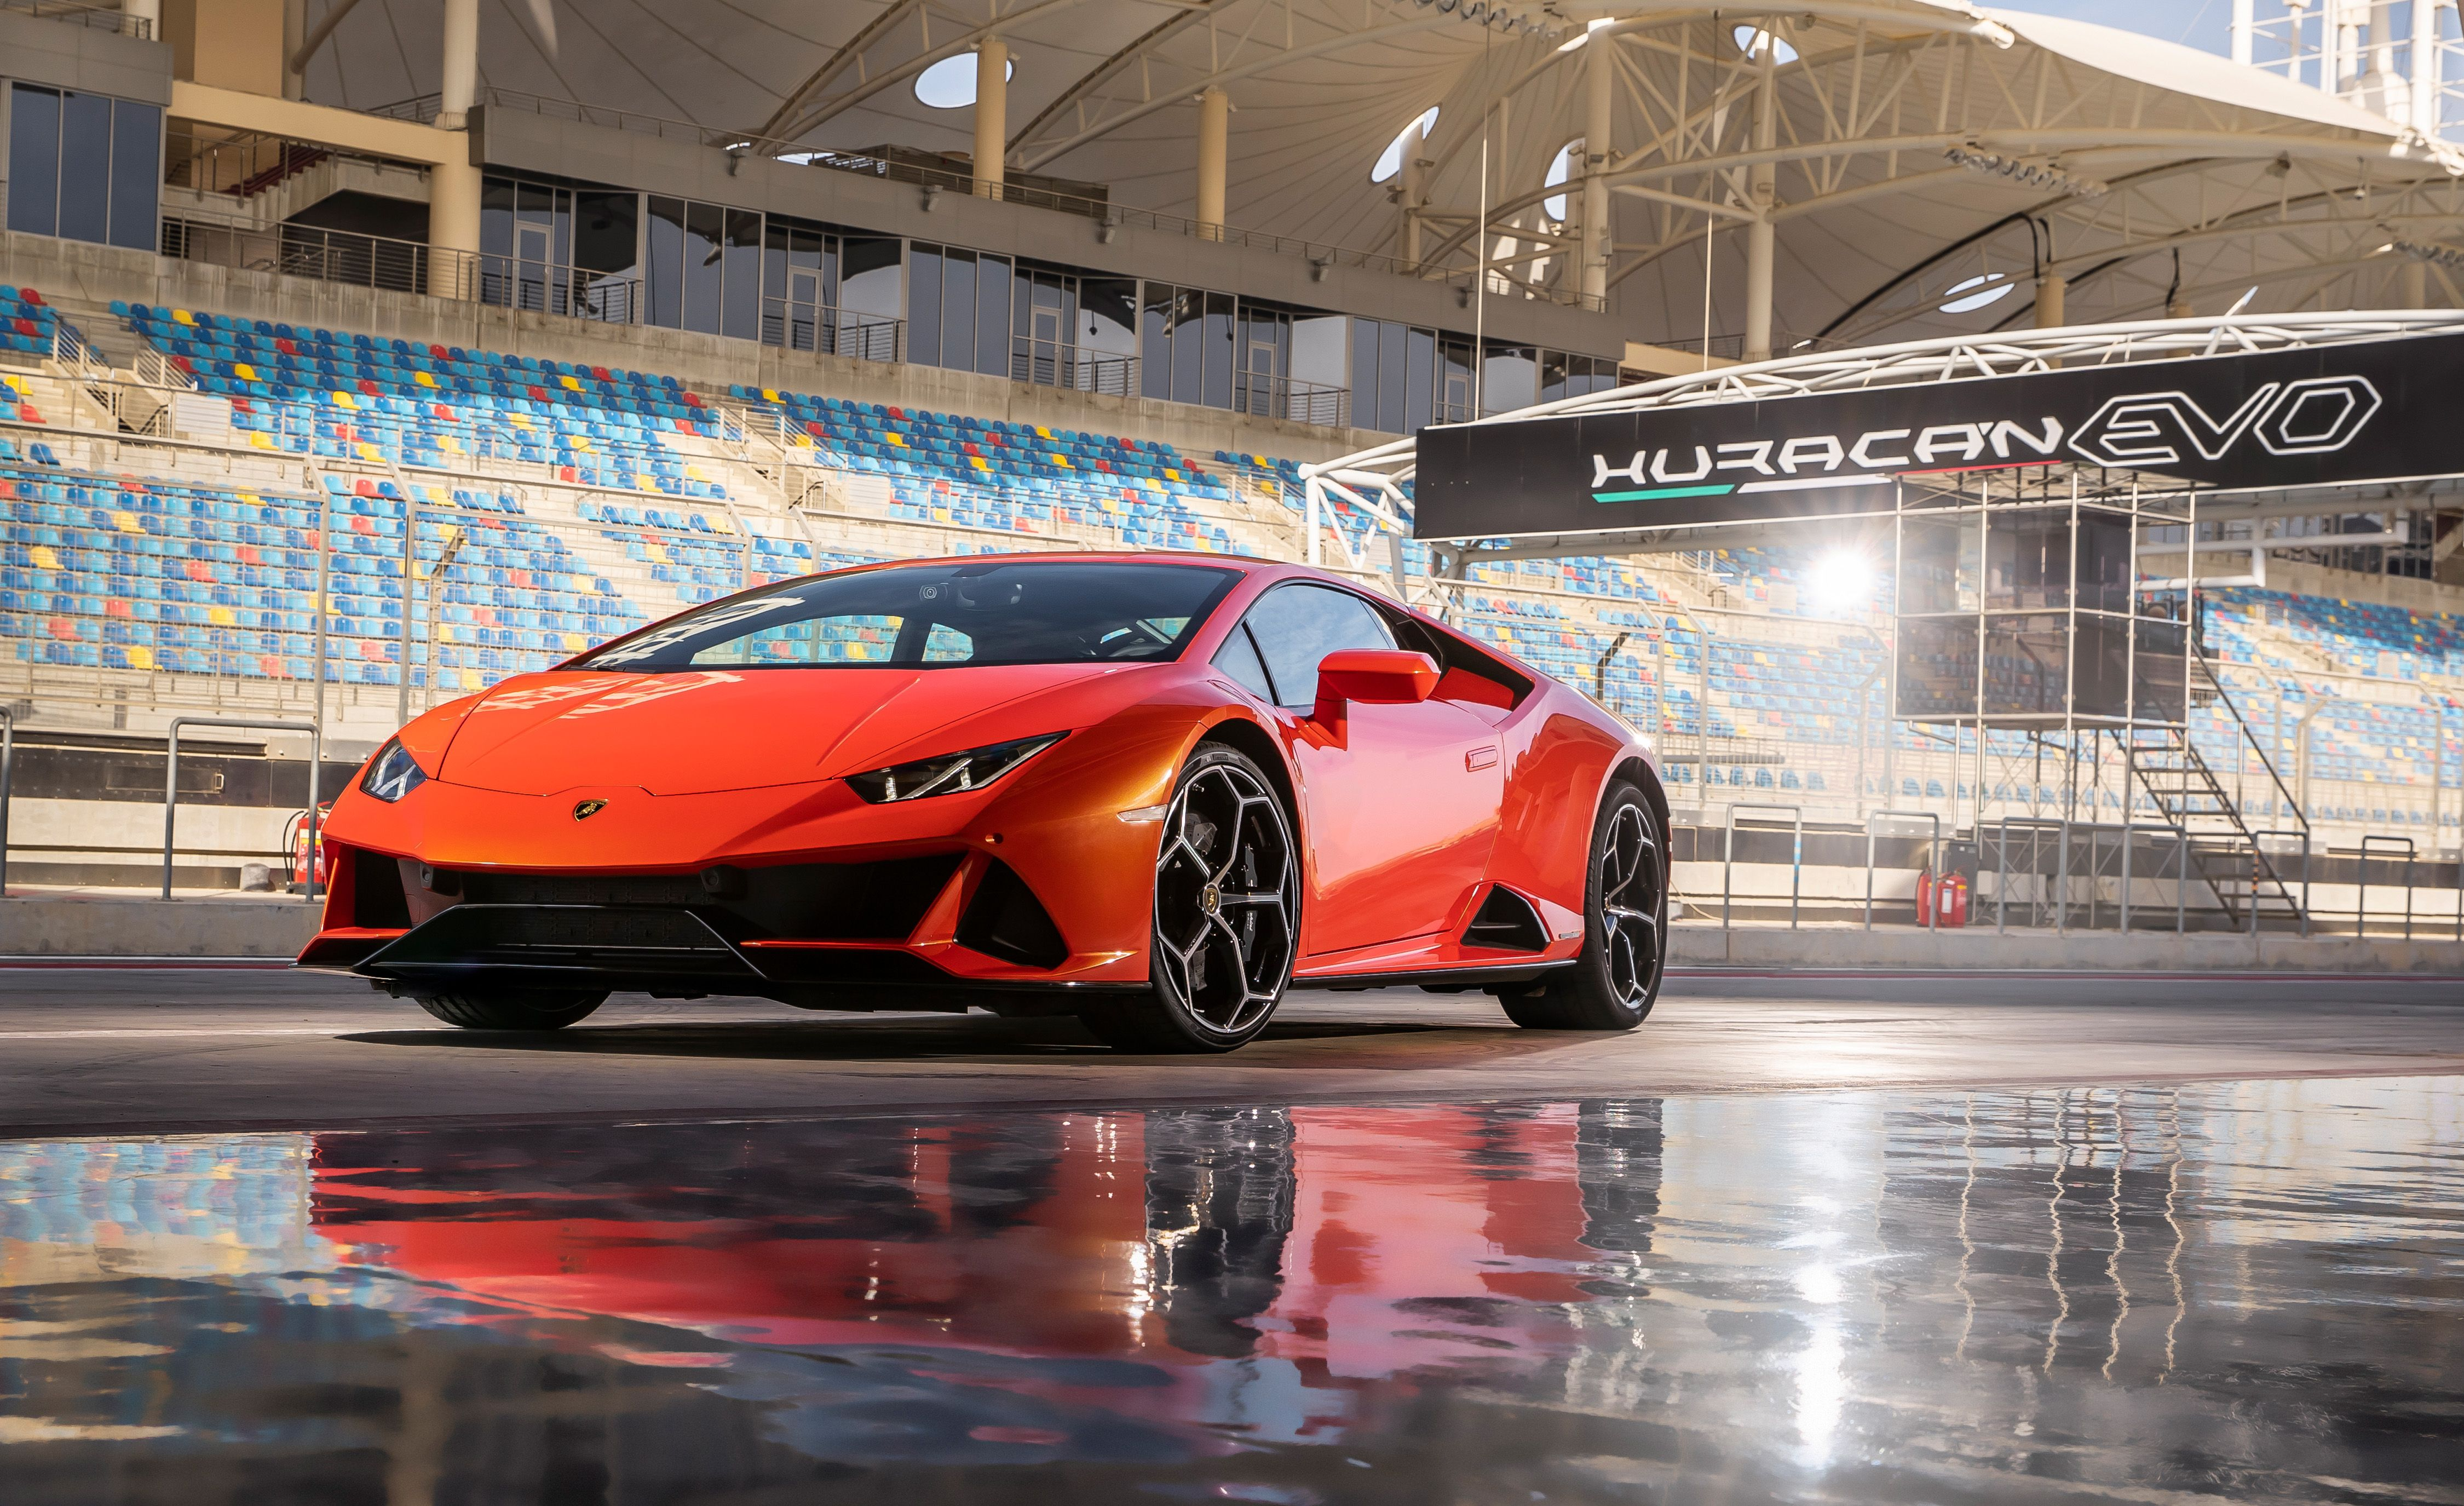 2020 Lamborghini Huracan Reviews Lamborghini Huracan Price Photos